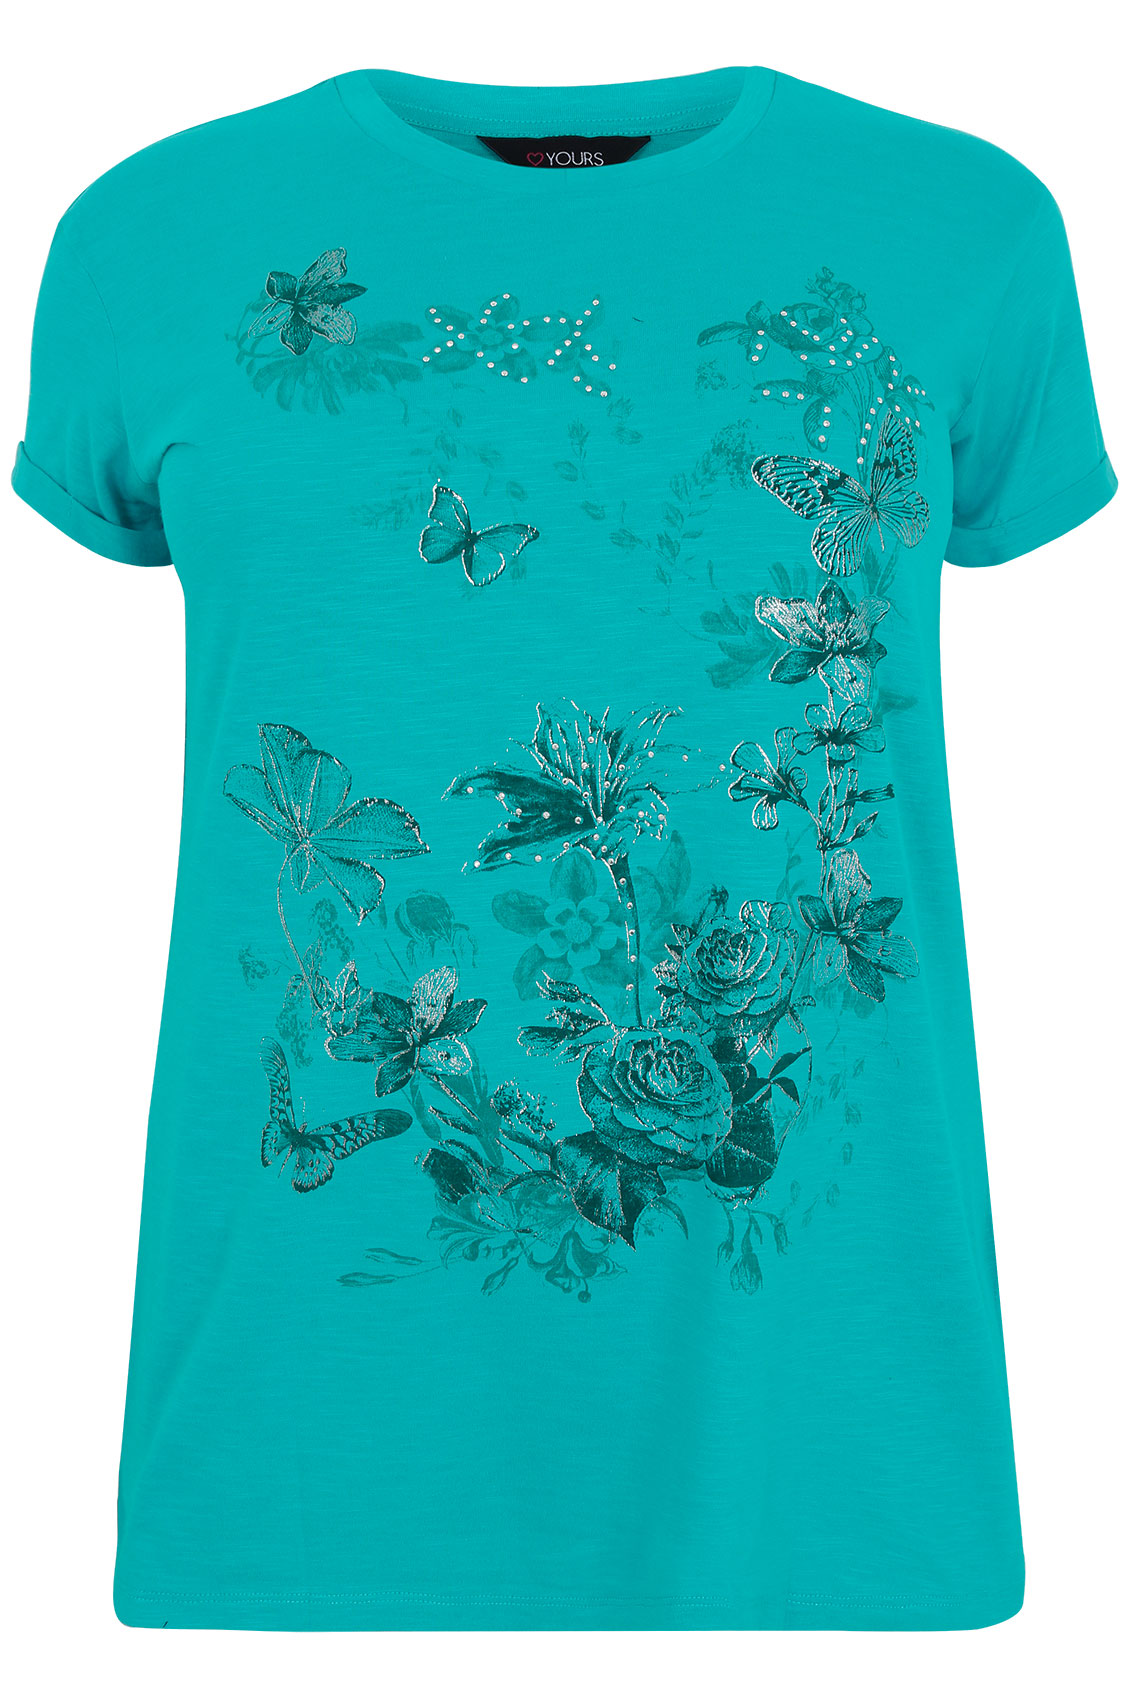 Jade green floral butterfly print t shirt plus size 16 to 32 for T shirt print dimensions